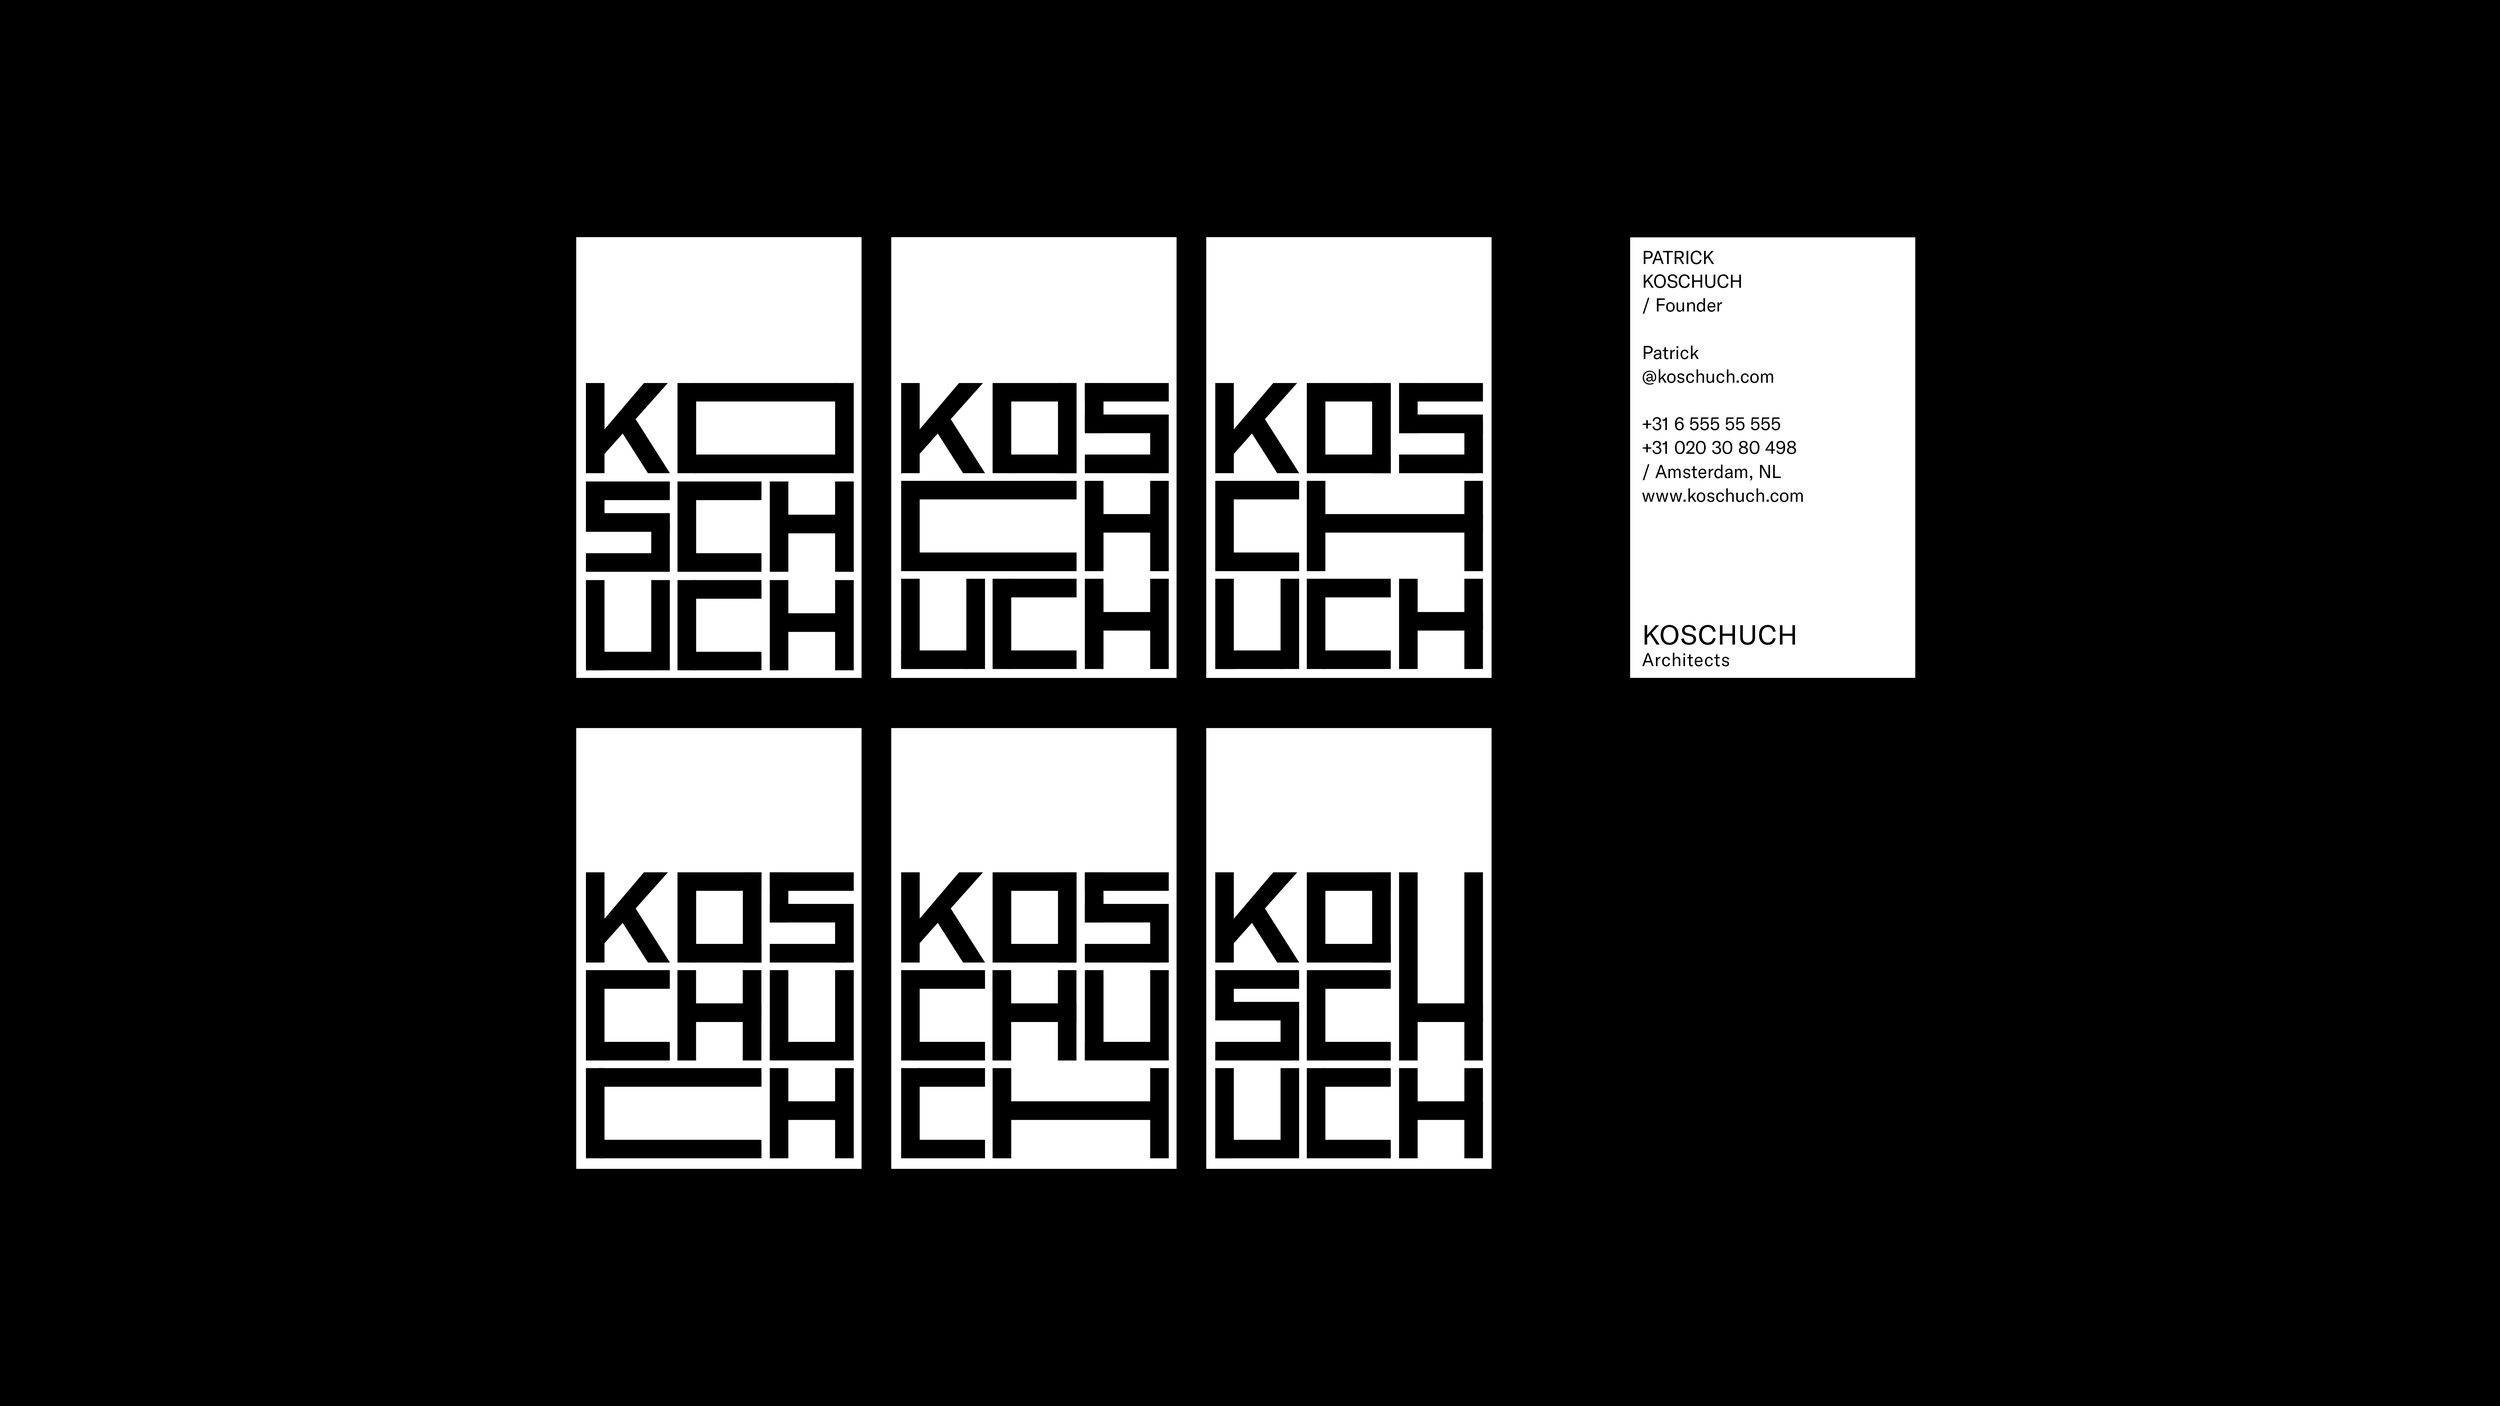 k-business-cards.png